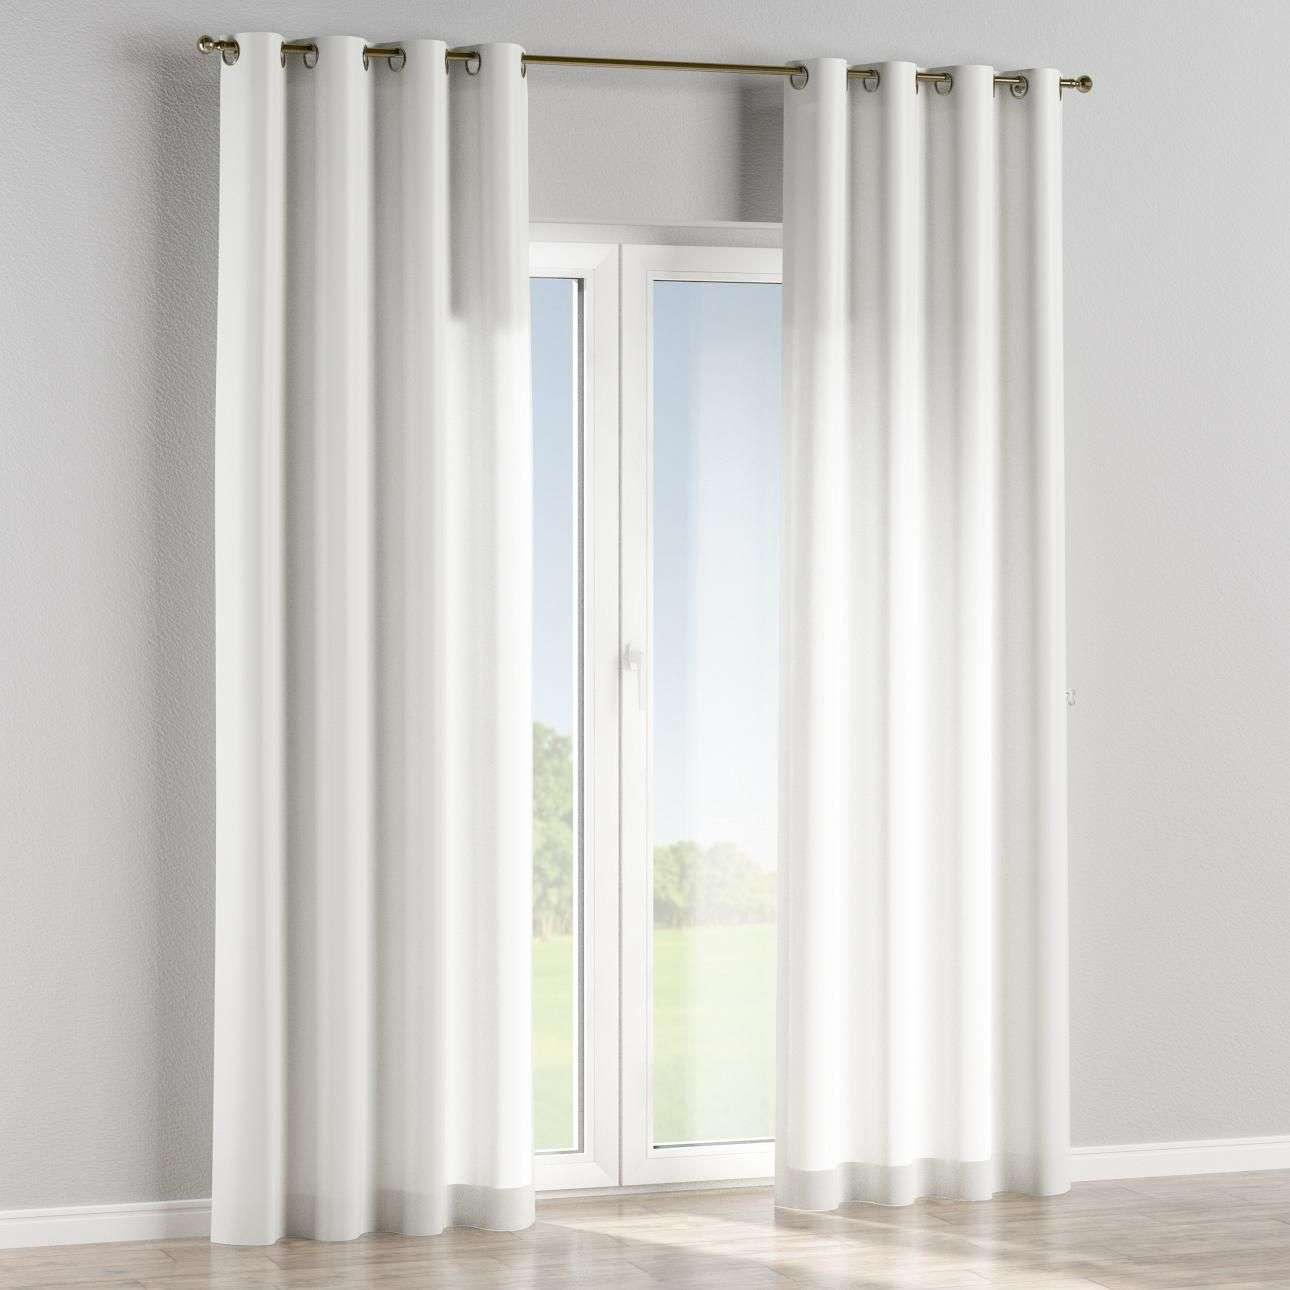 Eyelet lined curtains in collection Bristol, fabric: 125-32